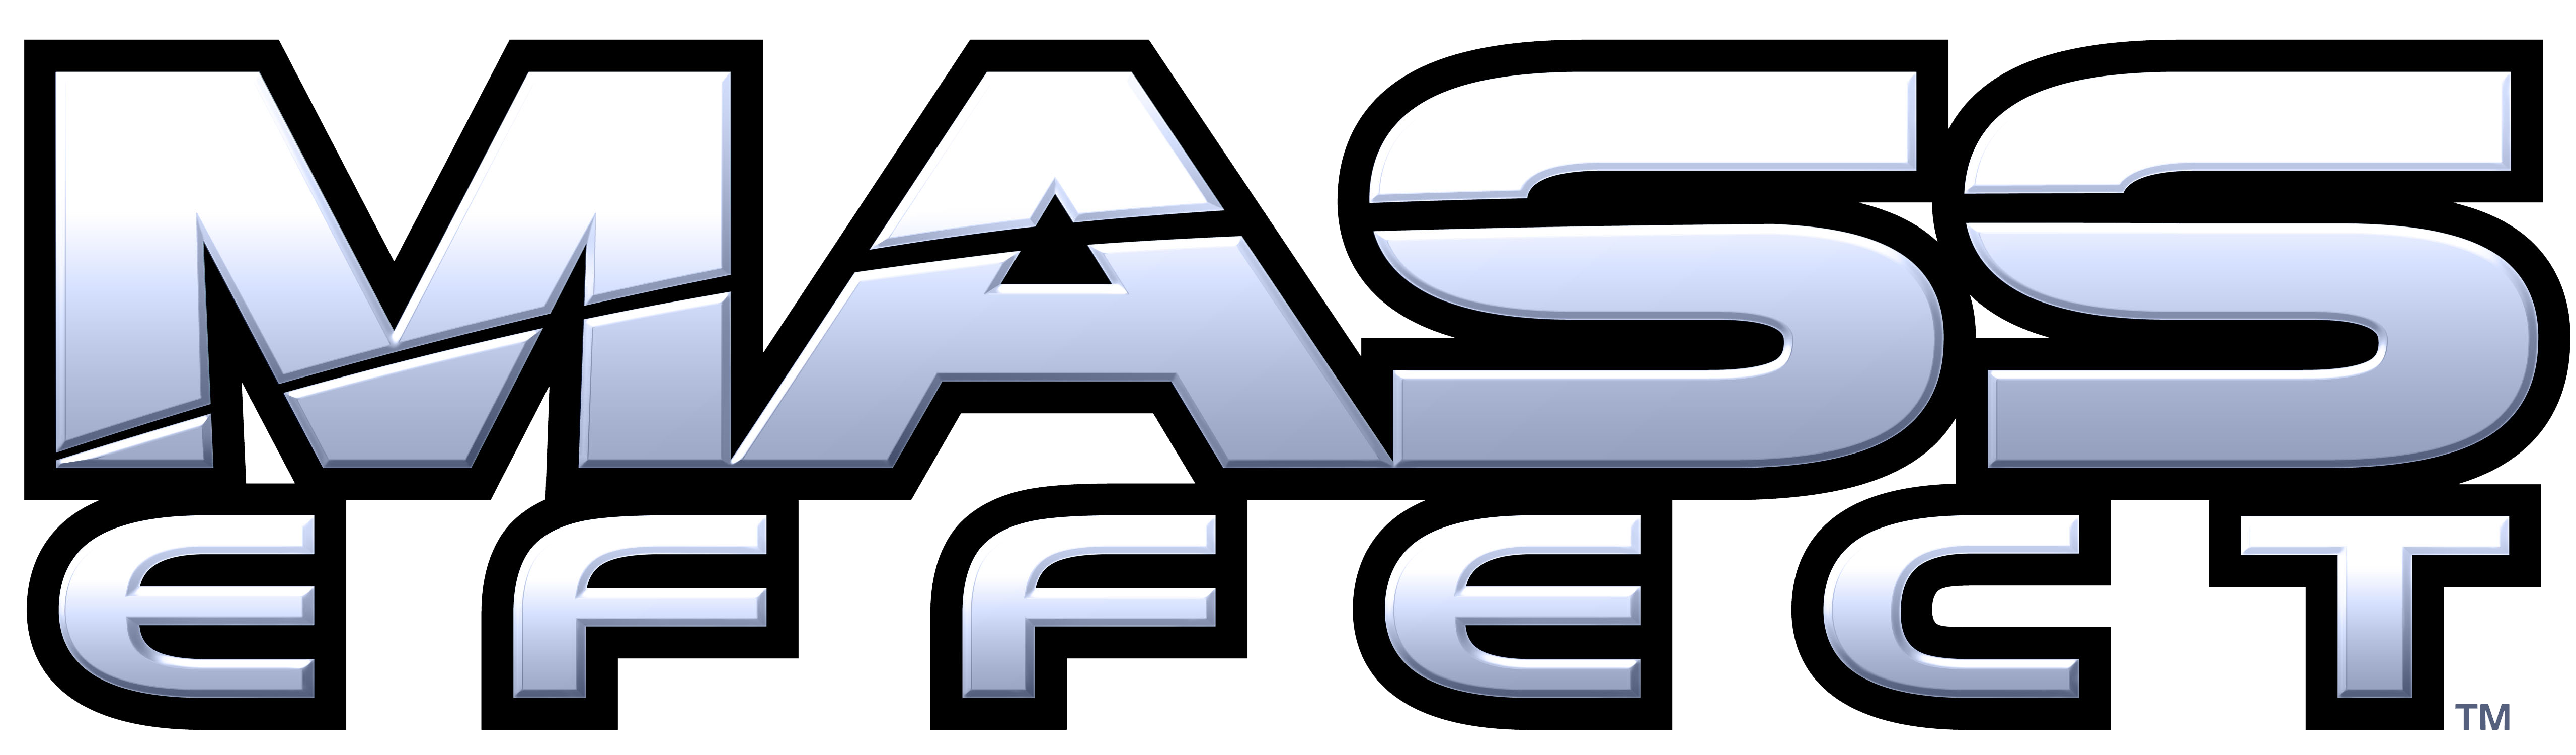 Mass effect 2 logo png. File wikimedia commons filemass